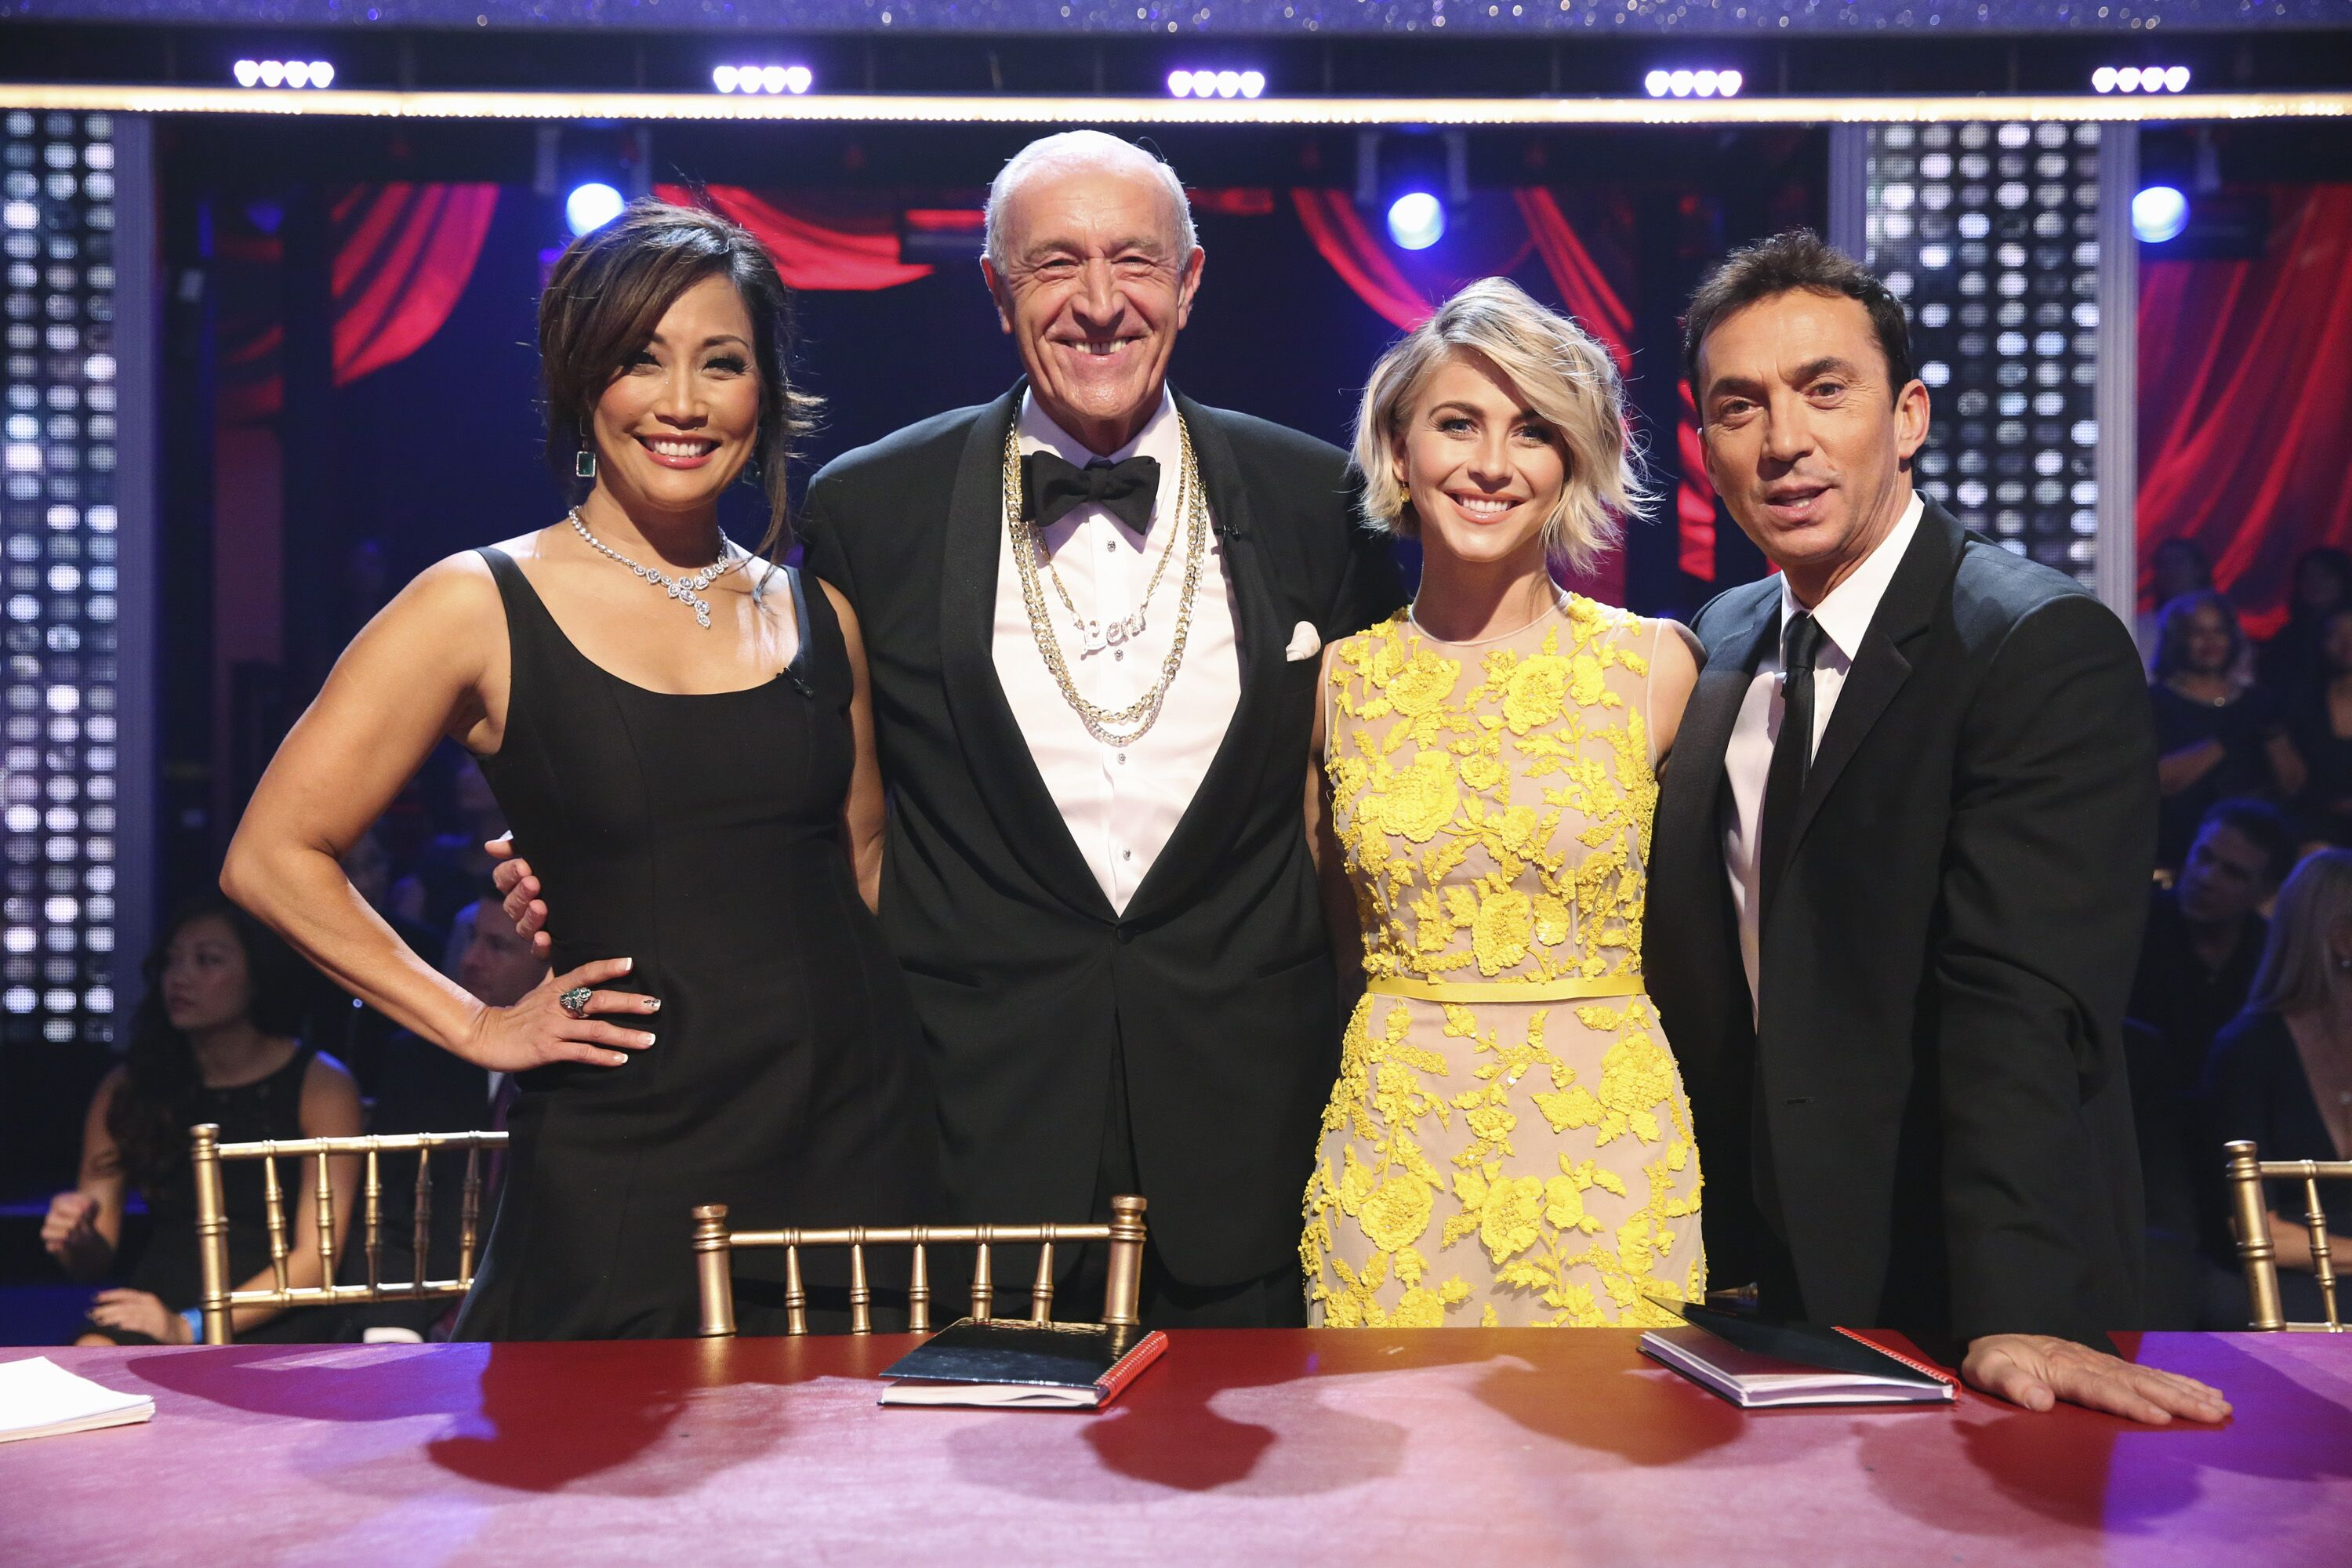 Carrie Ann Inaba Wedding.Carrie Ann Inaba Reveals What S Behind A Perfect 10 On Dwts